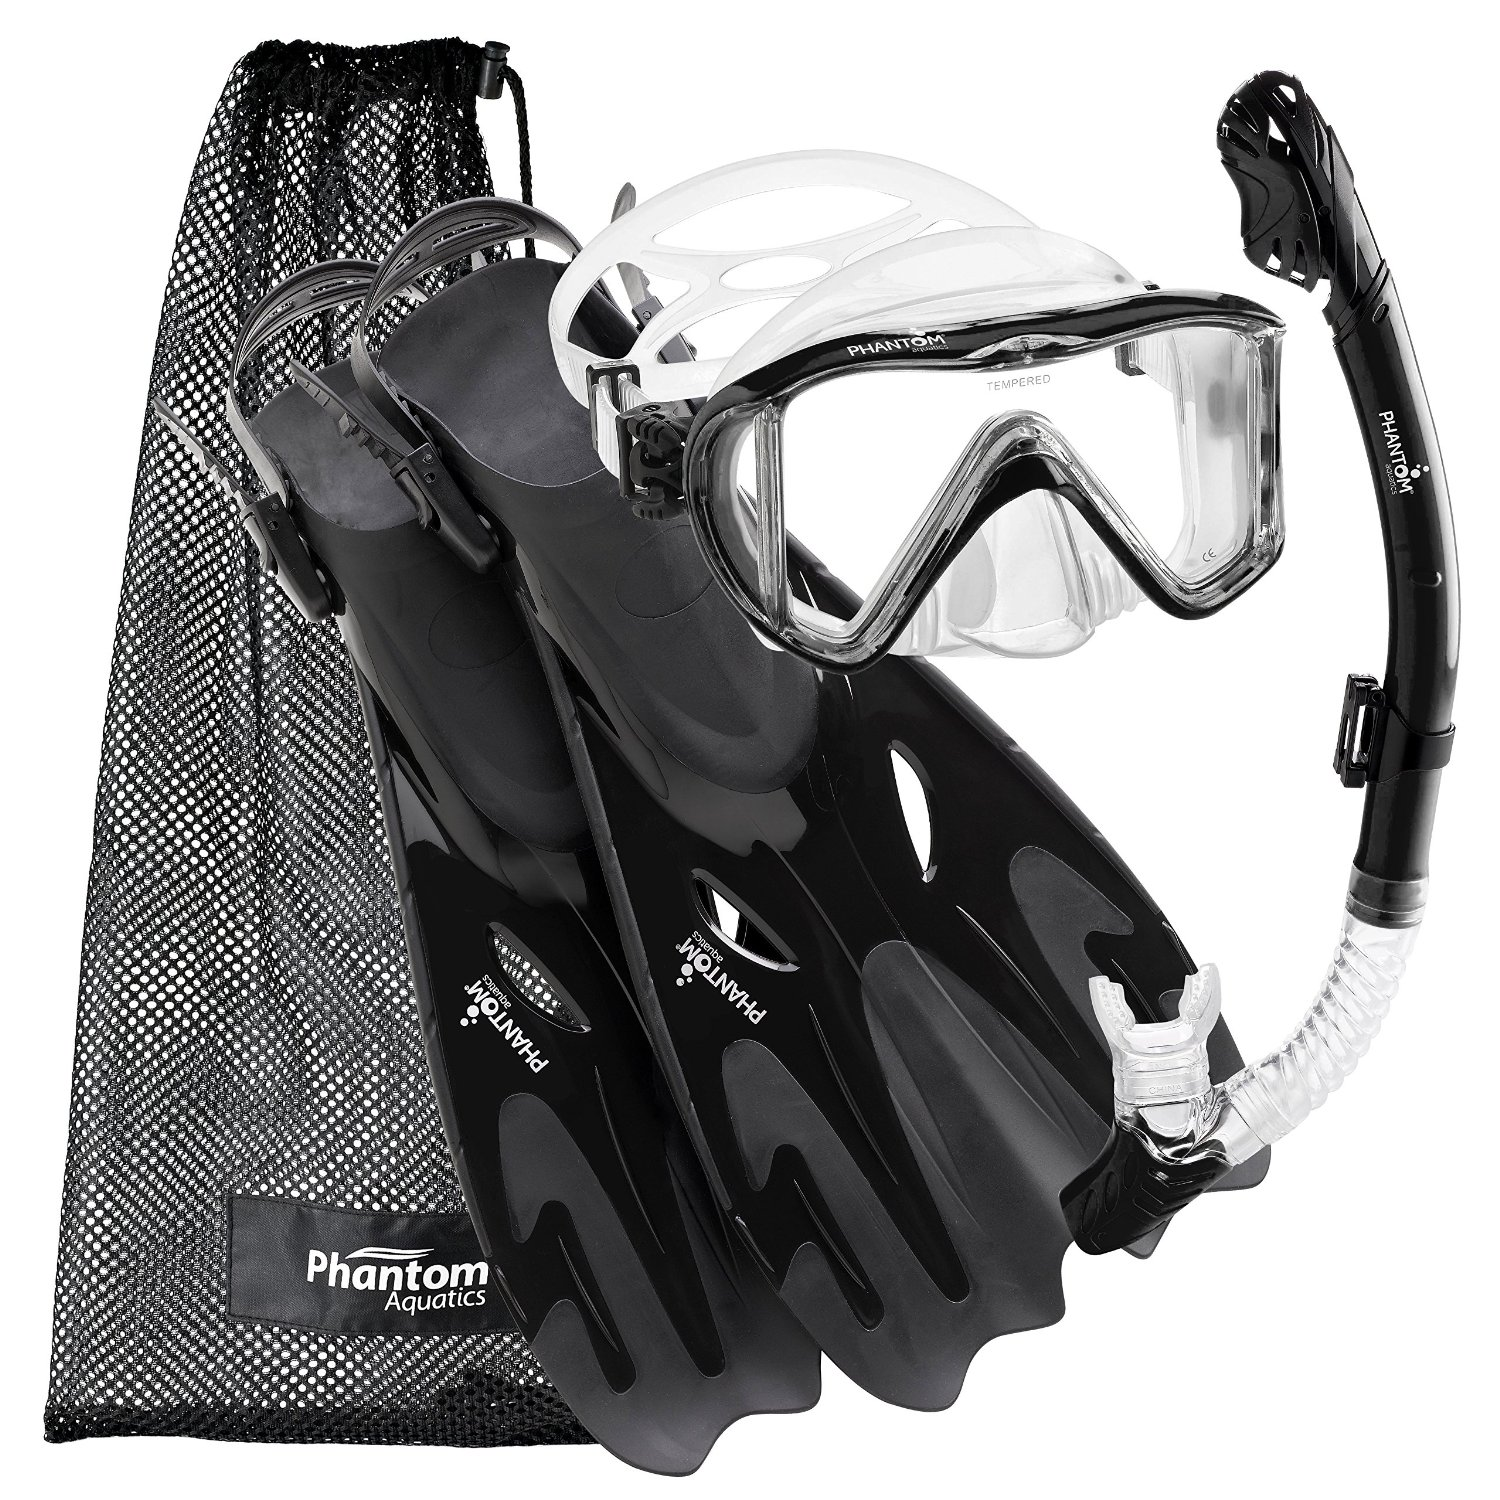 Phantom Aquatics Legendary Mask Fin Snorkel Set with Mesh Bag by